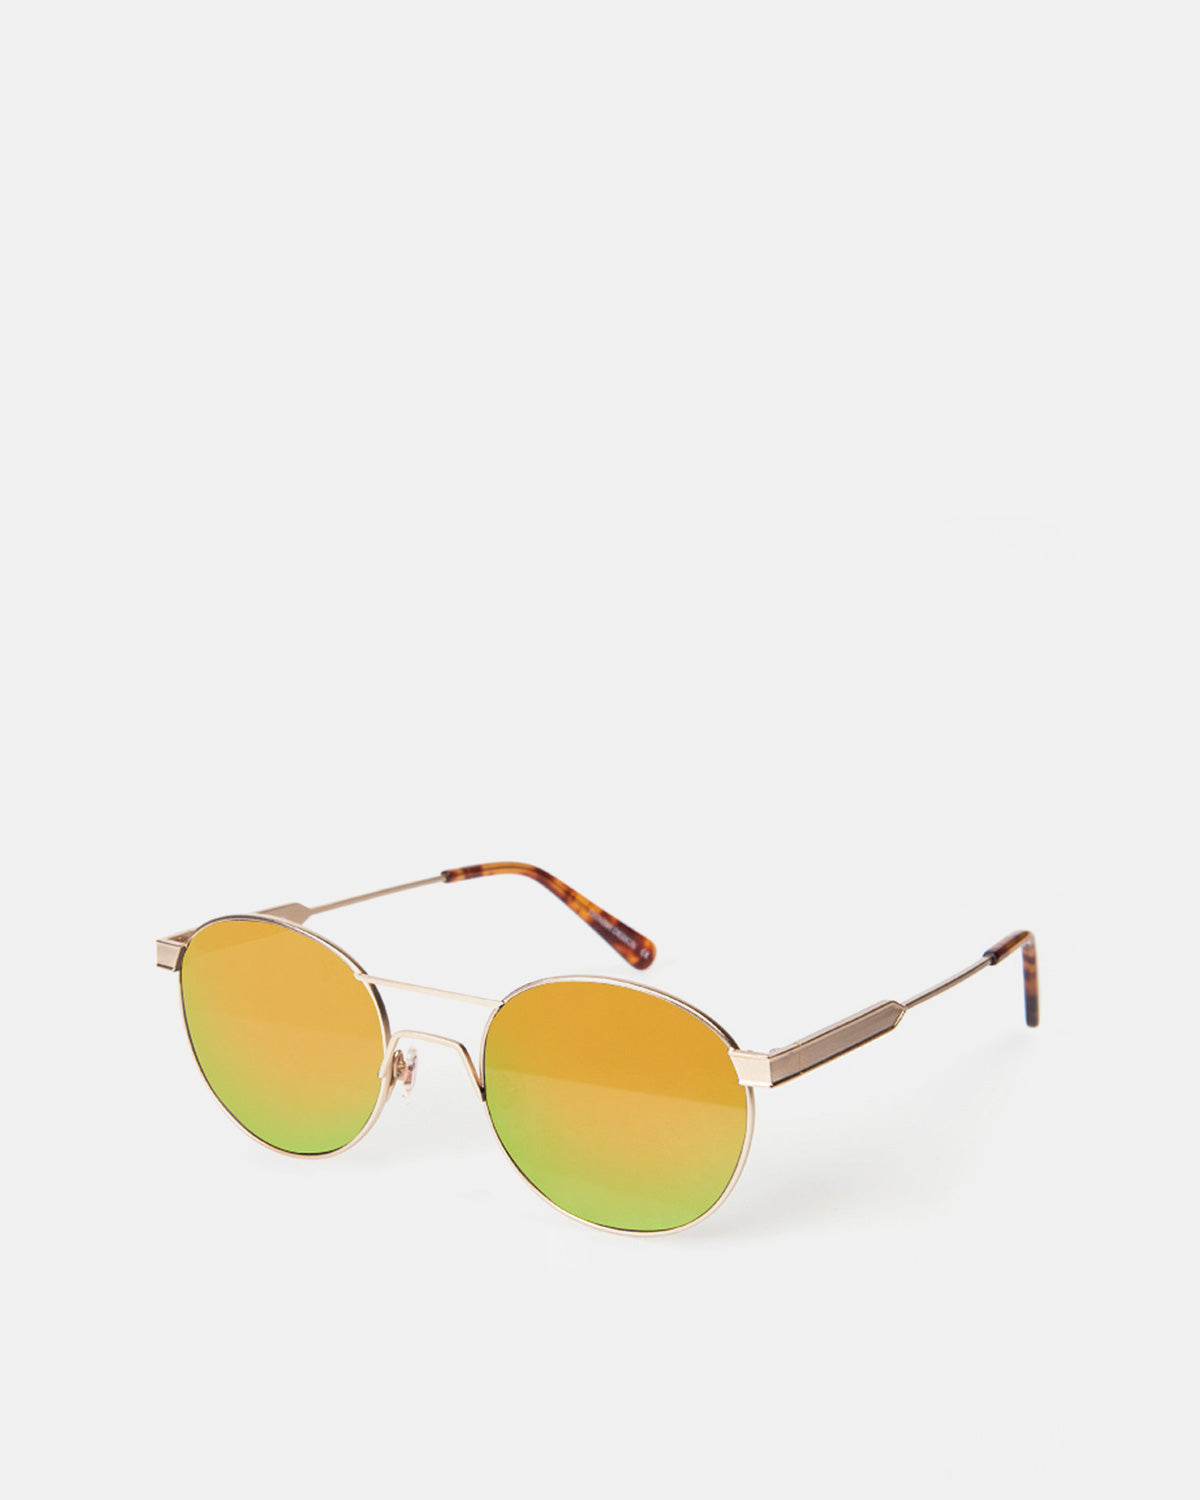 Han Kjobenhavn - Green Gold Sunglasses (Green | Gold)